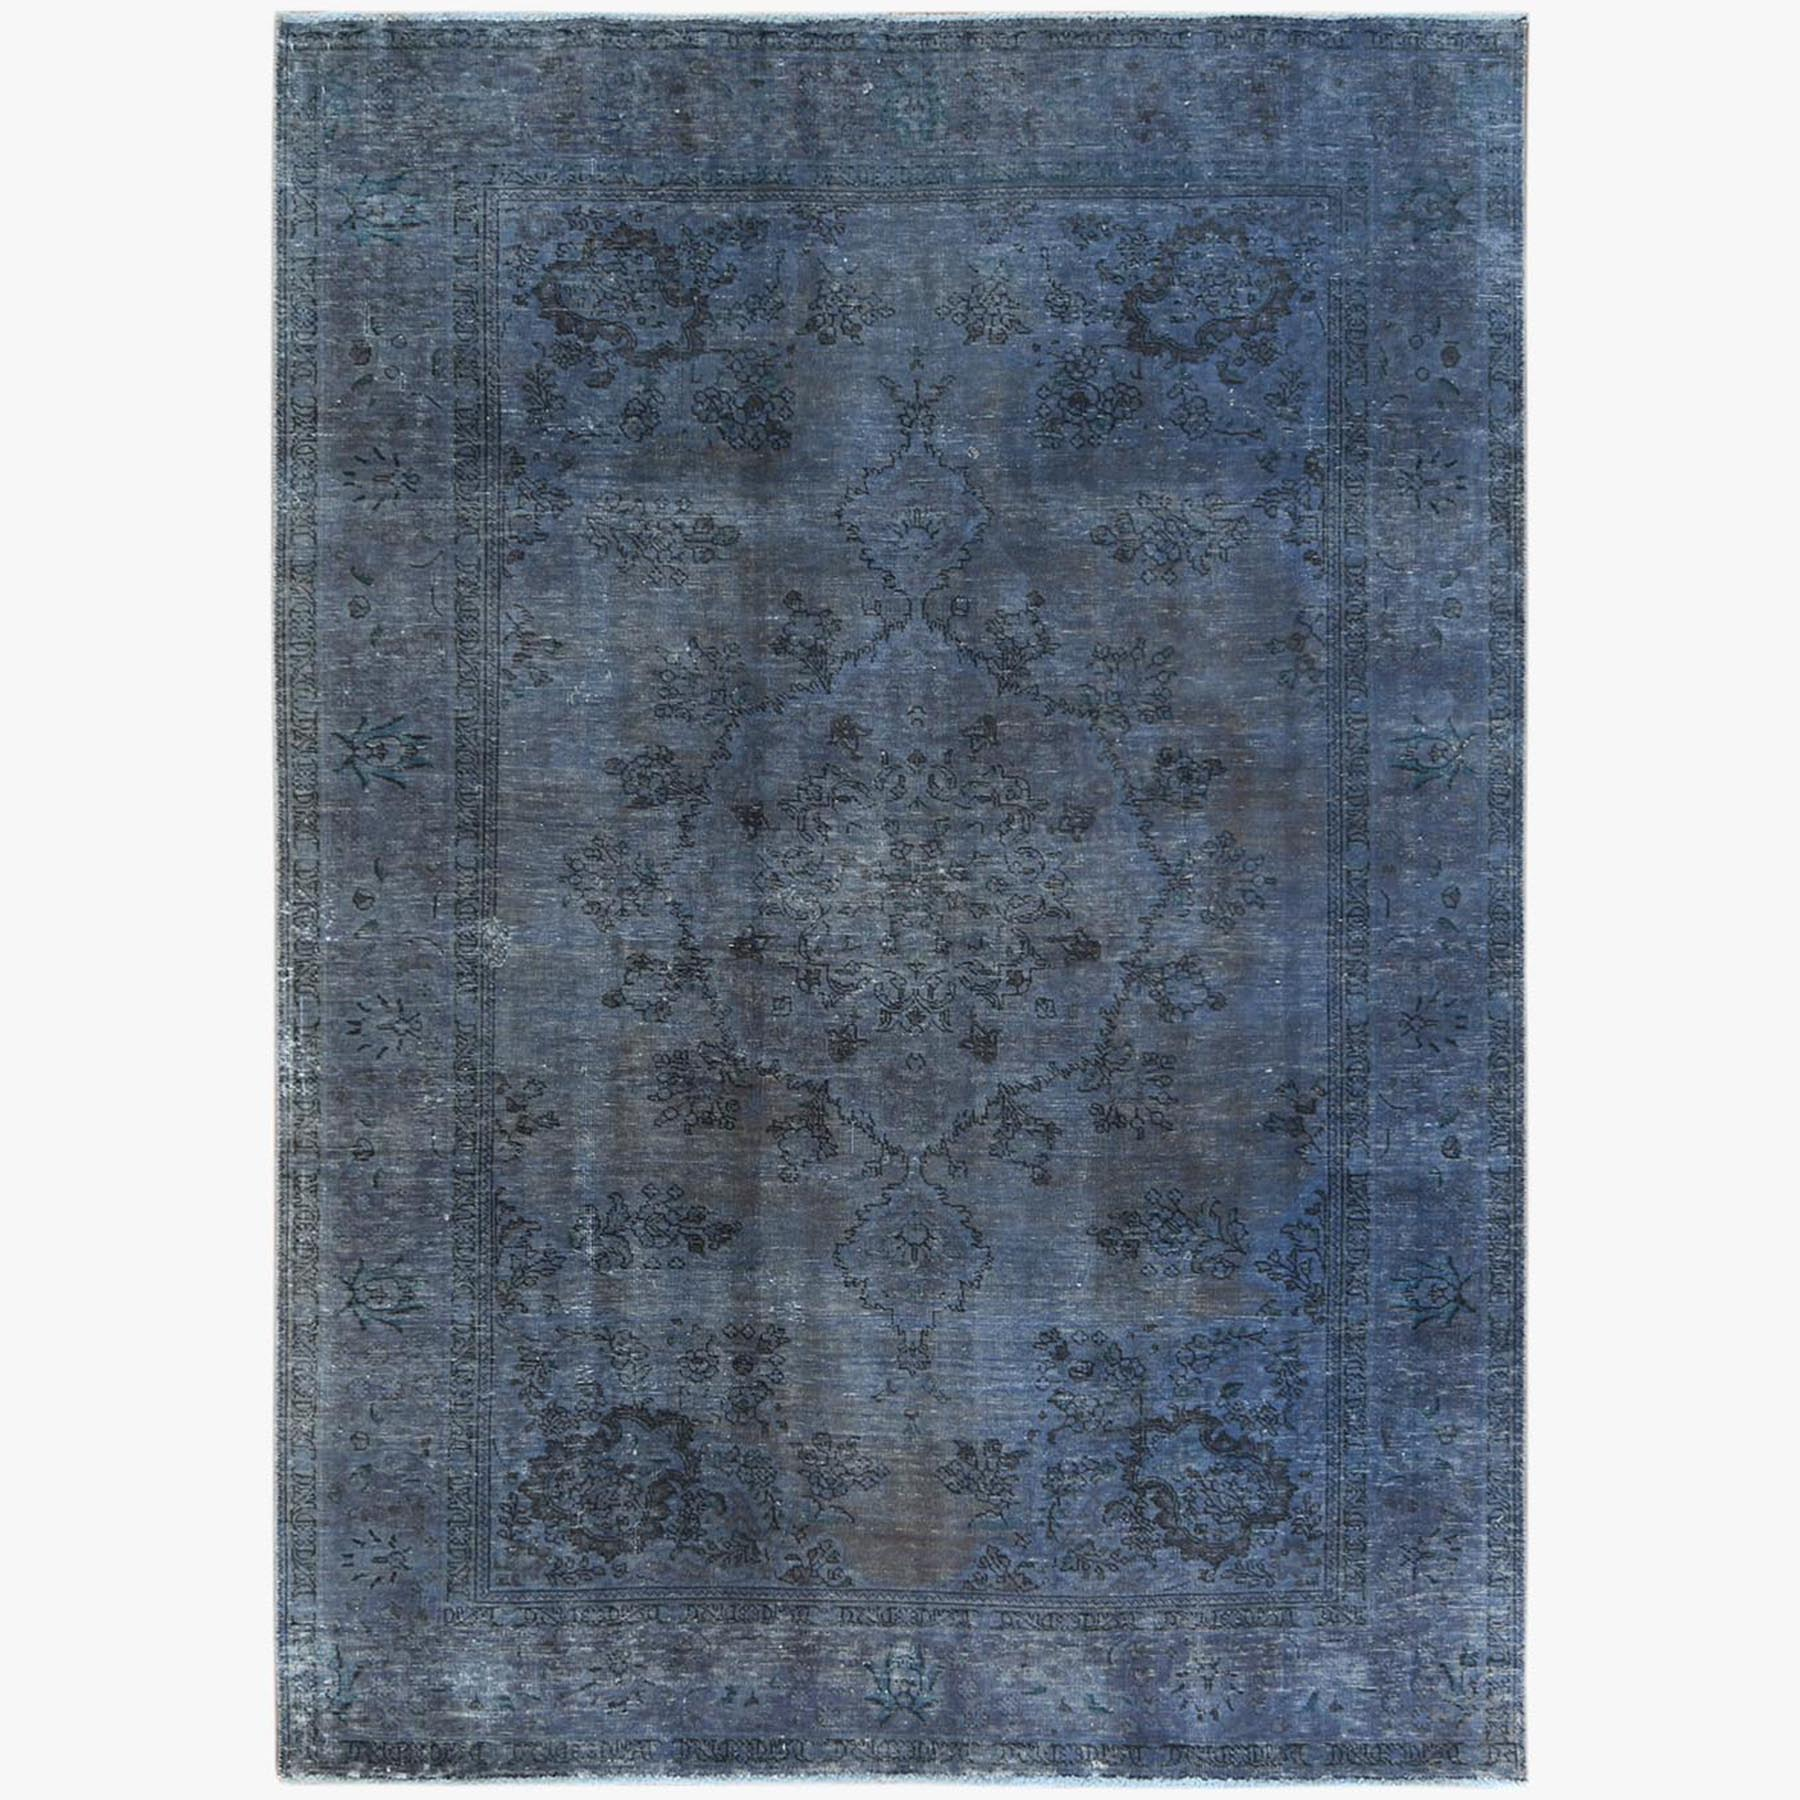 Fetneh Collection And Vintage Overdyed Collection Hand Knotted Blue Rug No: 1122804